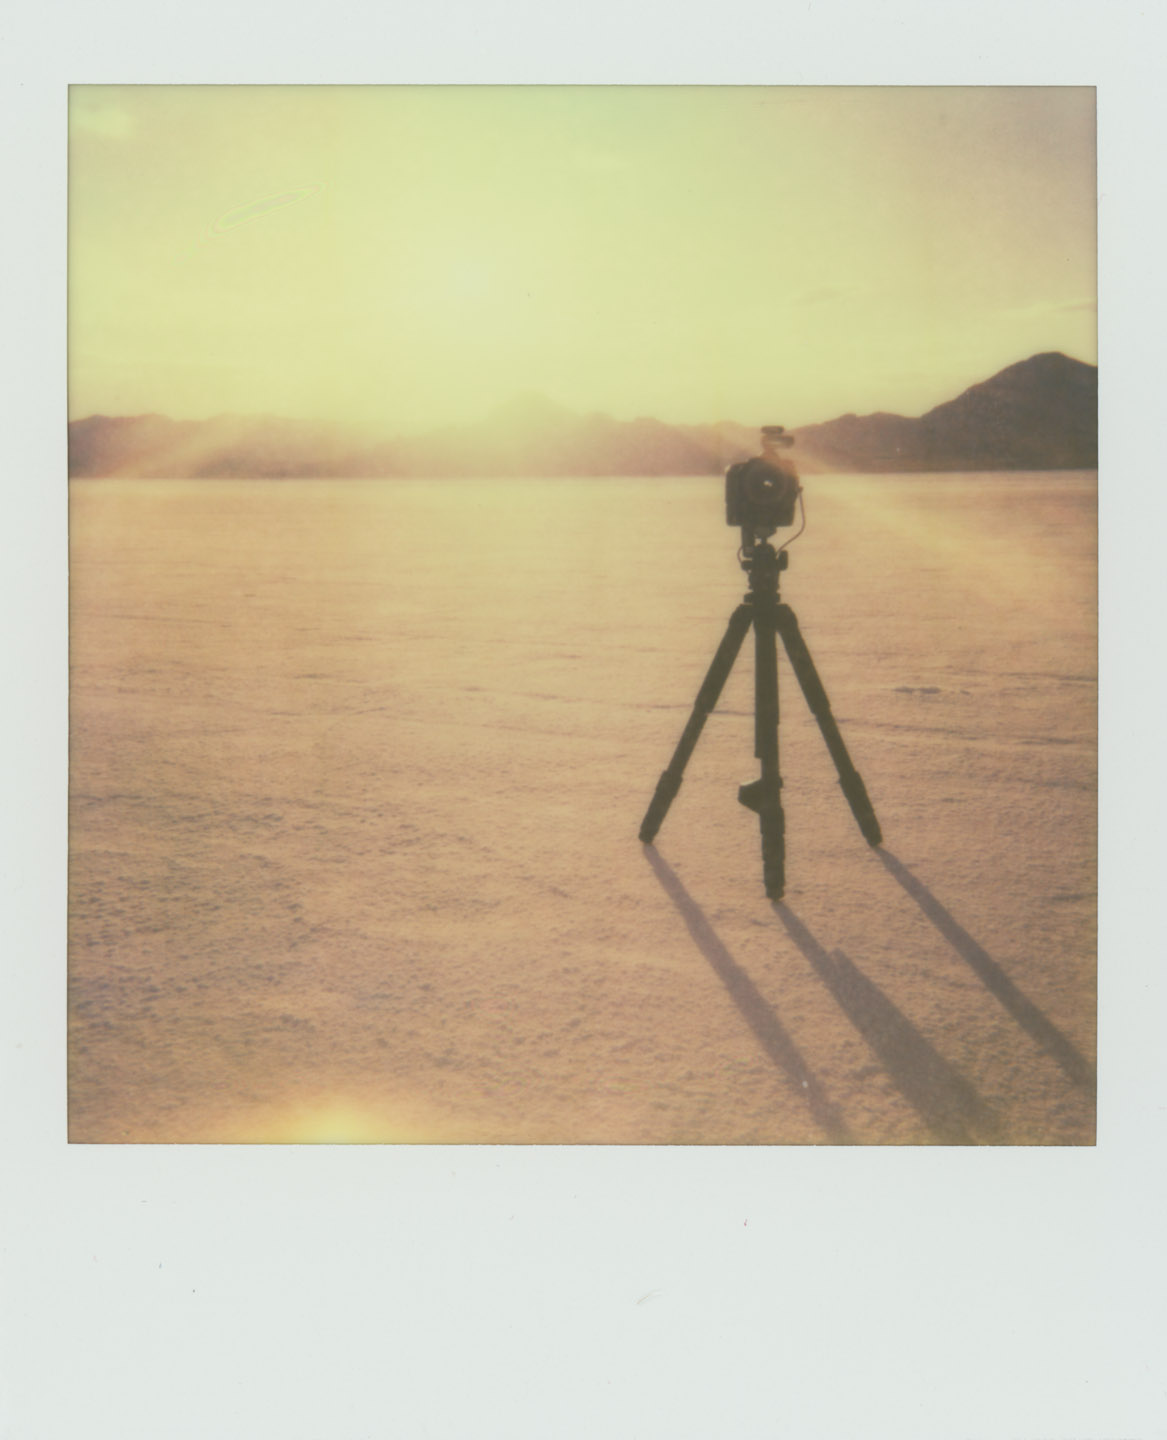 Camera and tripod on the Bonneville Salt Flats. Shot with The Impossible Project Film